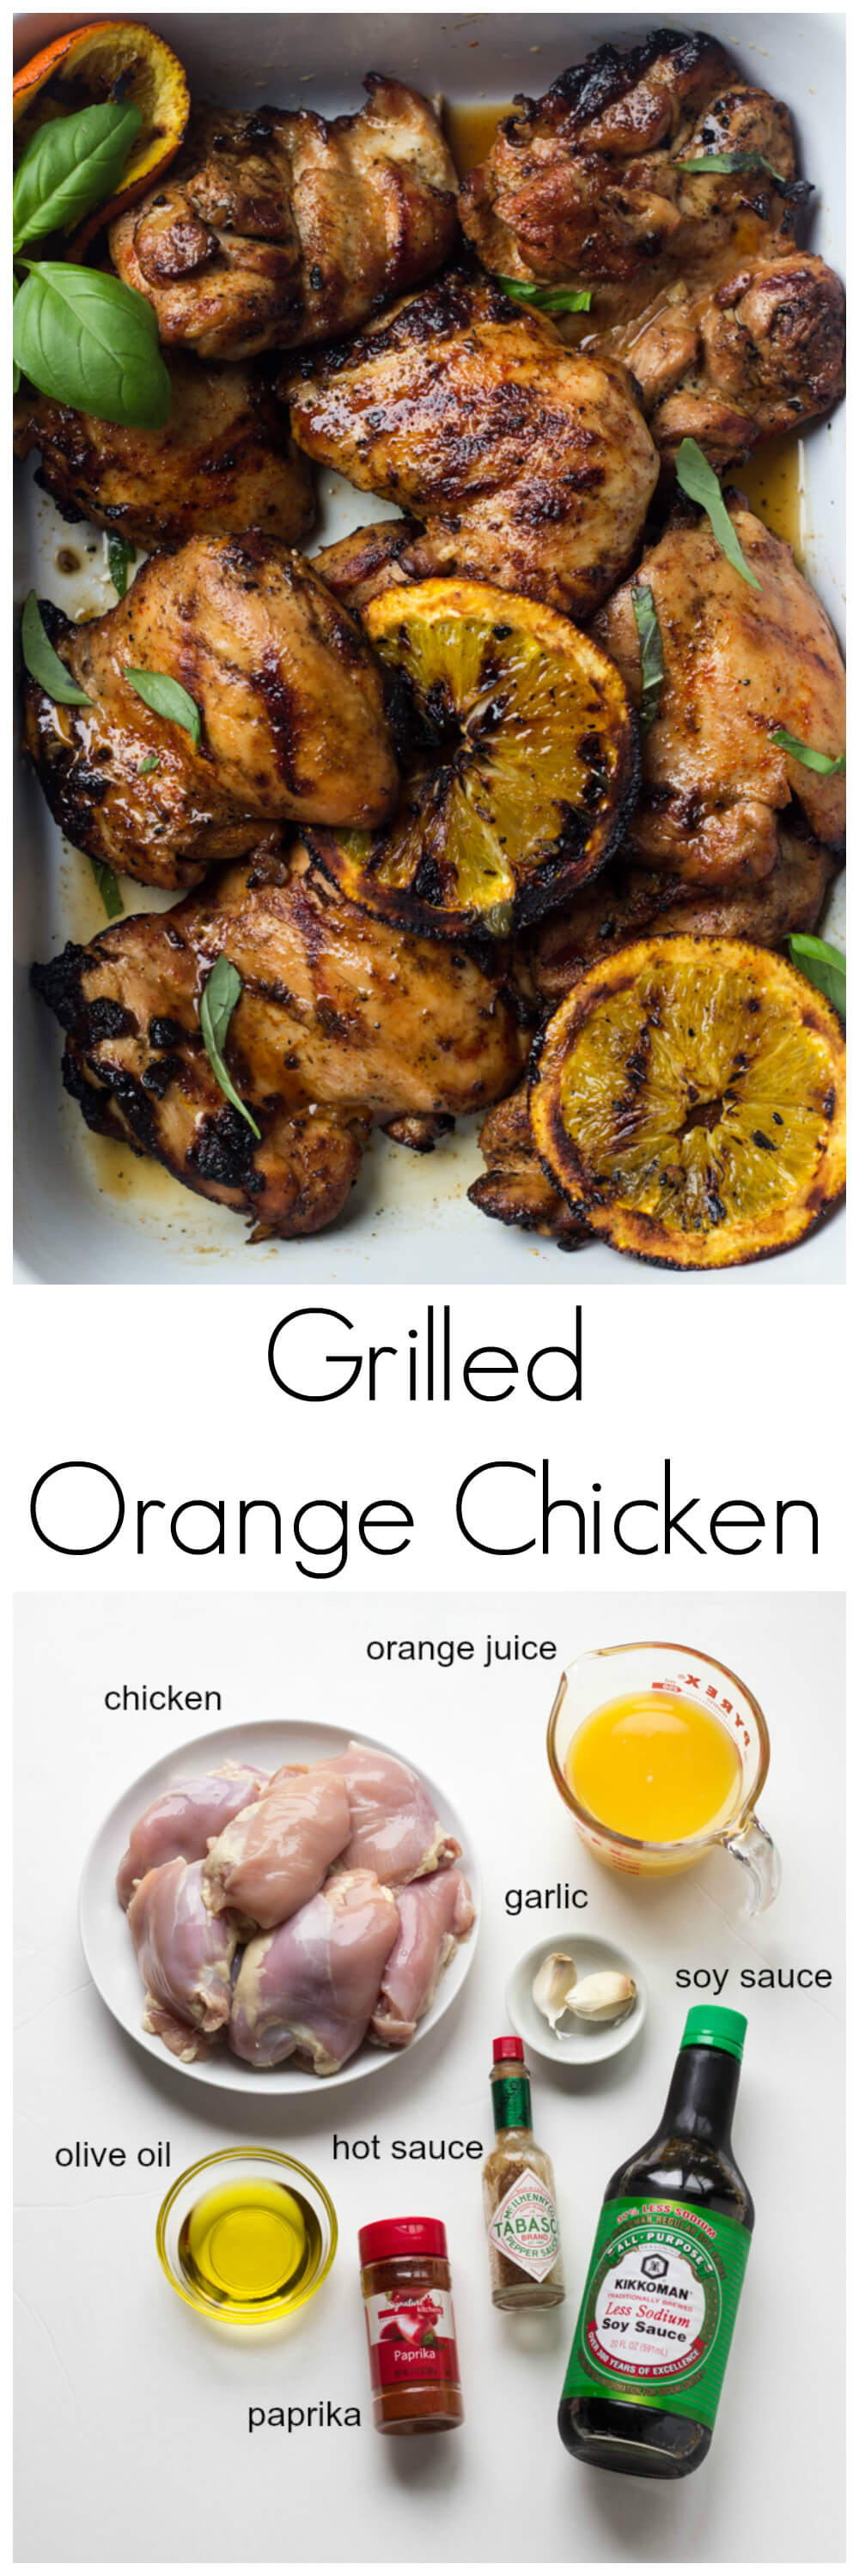 Grilled Orange Chicken Recipe - family favorite chicken recipe that is a must during the grilling season! | littlebroken.com @littlebroken